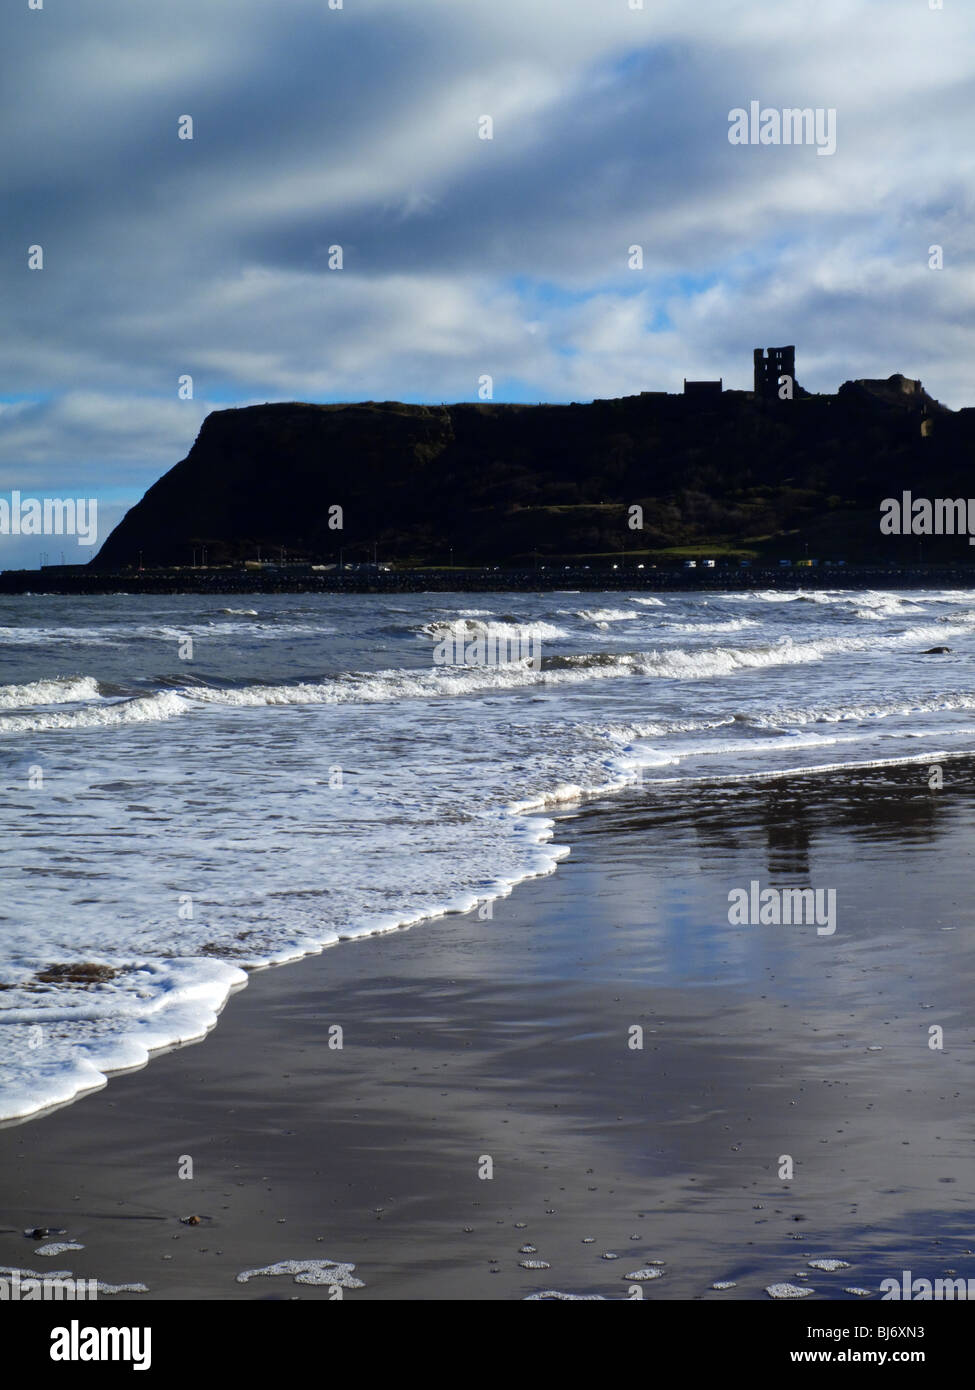 The beach at Scarborough North Bay in North Yorkshire England UK with the castle visible on the clifftop and waves - Stock Image